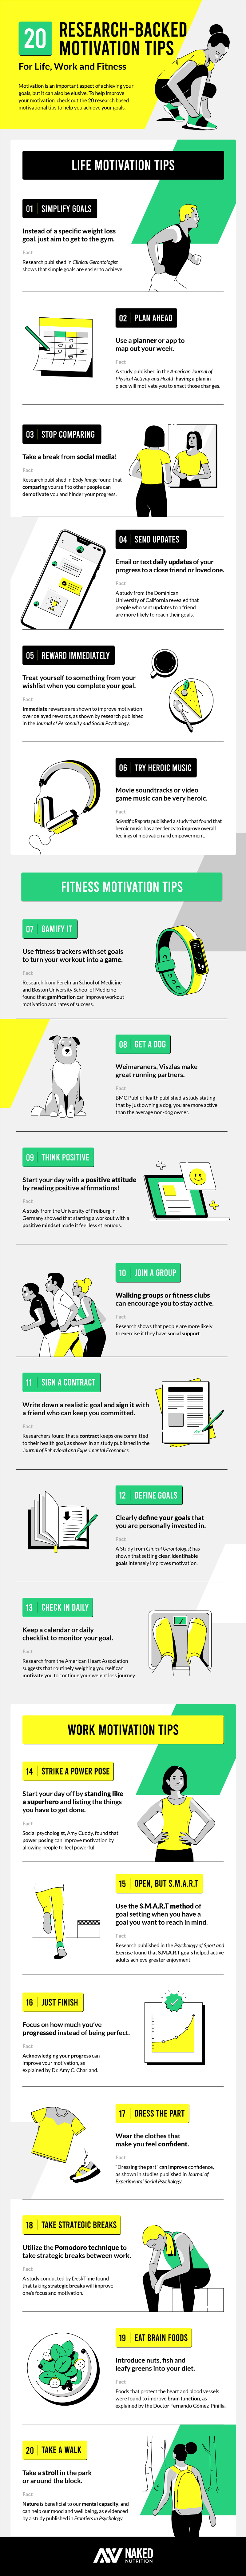 motivation tips infographic